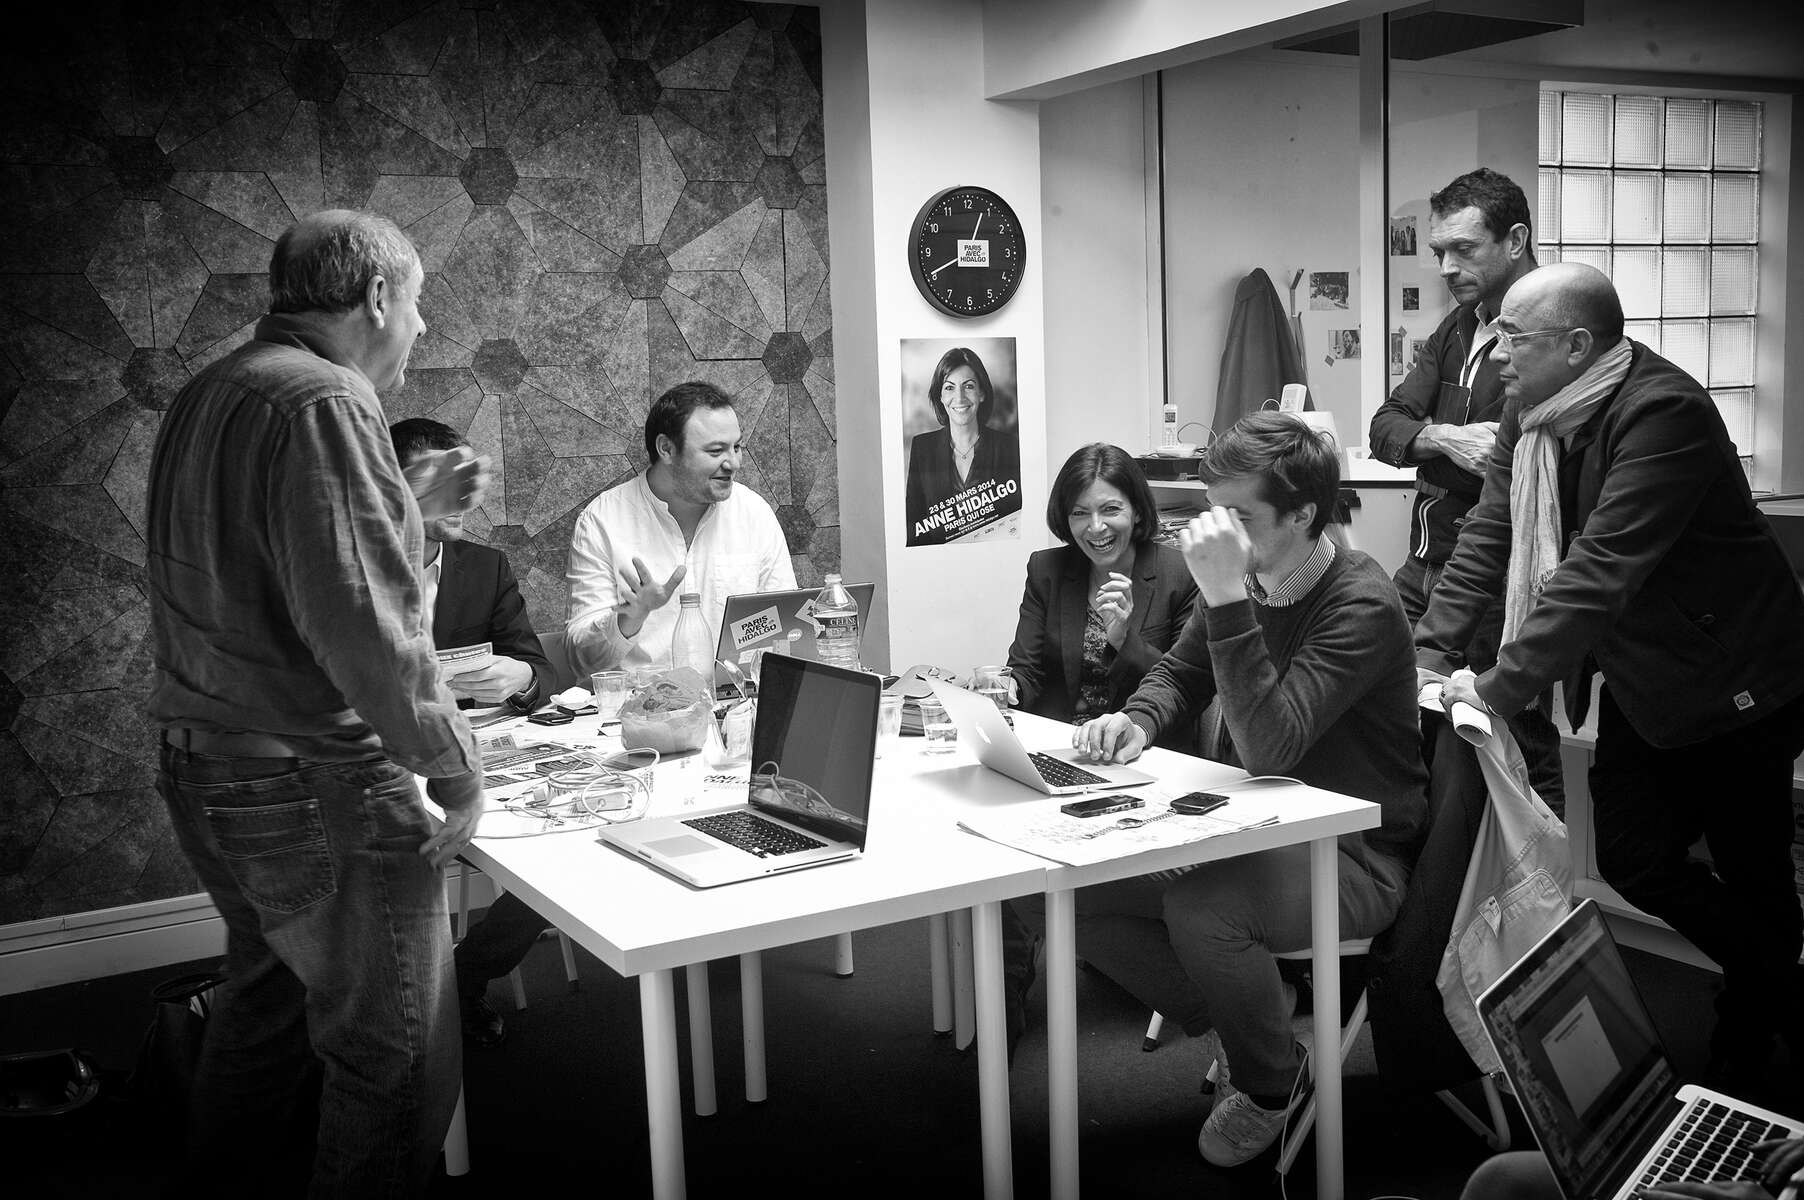 March 16, 2014.  PARIS, FRANCE- Anne Hidalgo meets with her senior staff in the conference room of her headquarters in Paris' Bastille neighborhood before a press conference on Paris' pollution problem.   For the first time in France's history, Paris will have a woman as a mayor - either Socialist Anne Hidalgo or Center-Right Nathalie Kosciusko-Morizet.  Photo by Scout Tufankjian